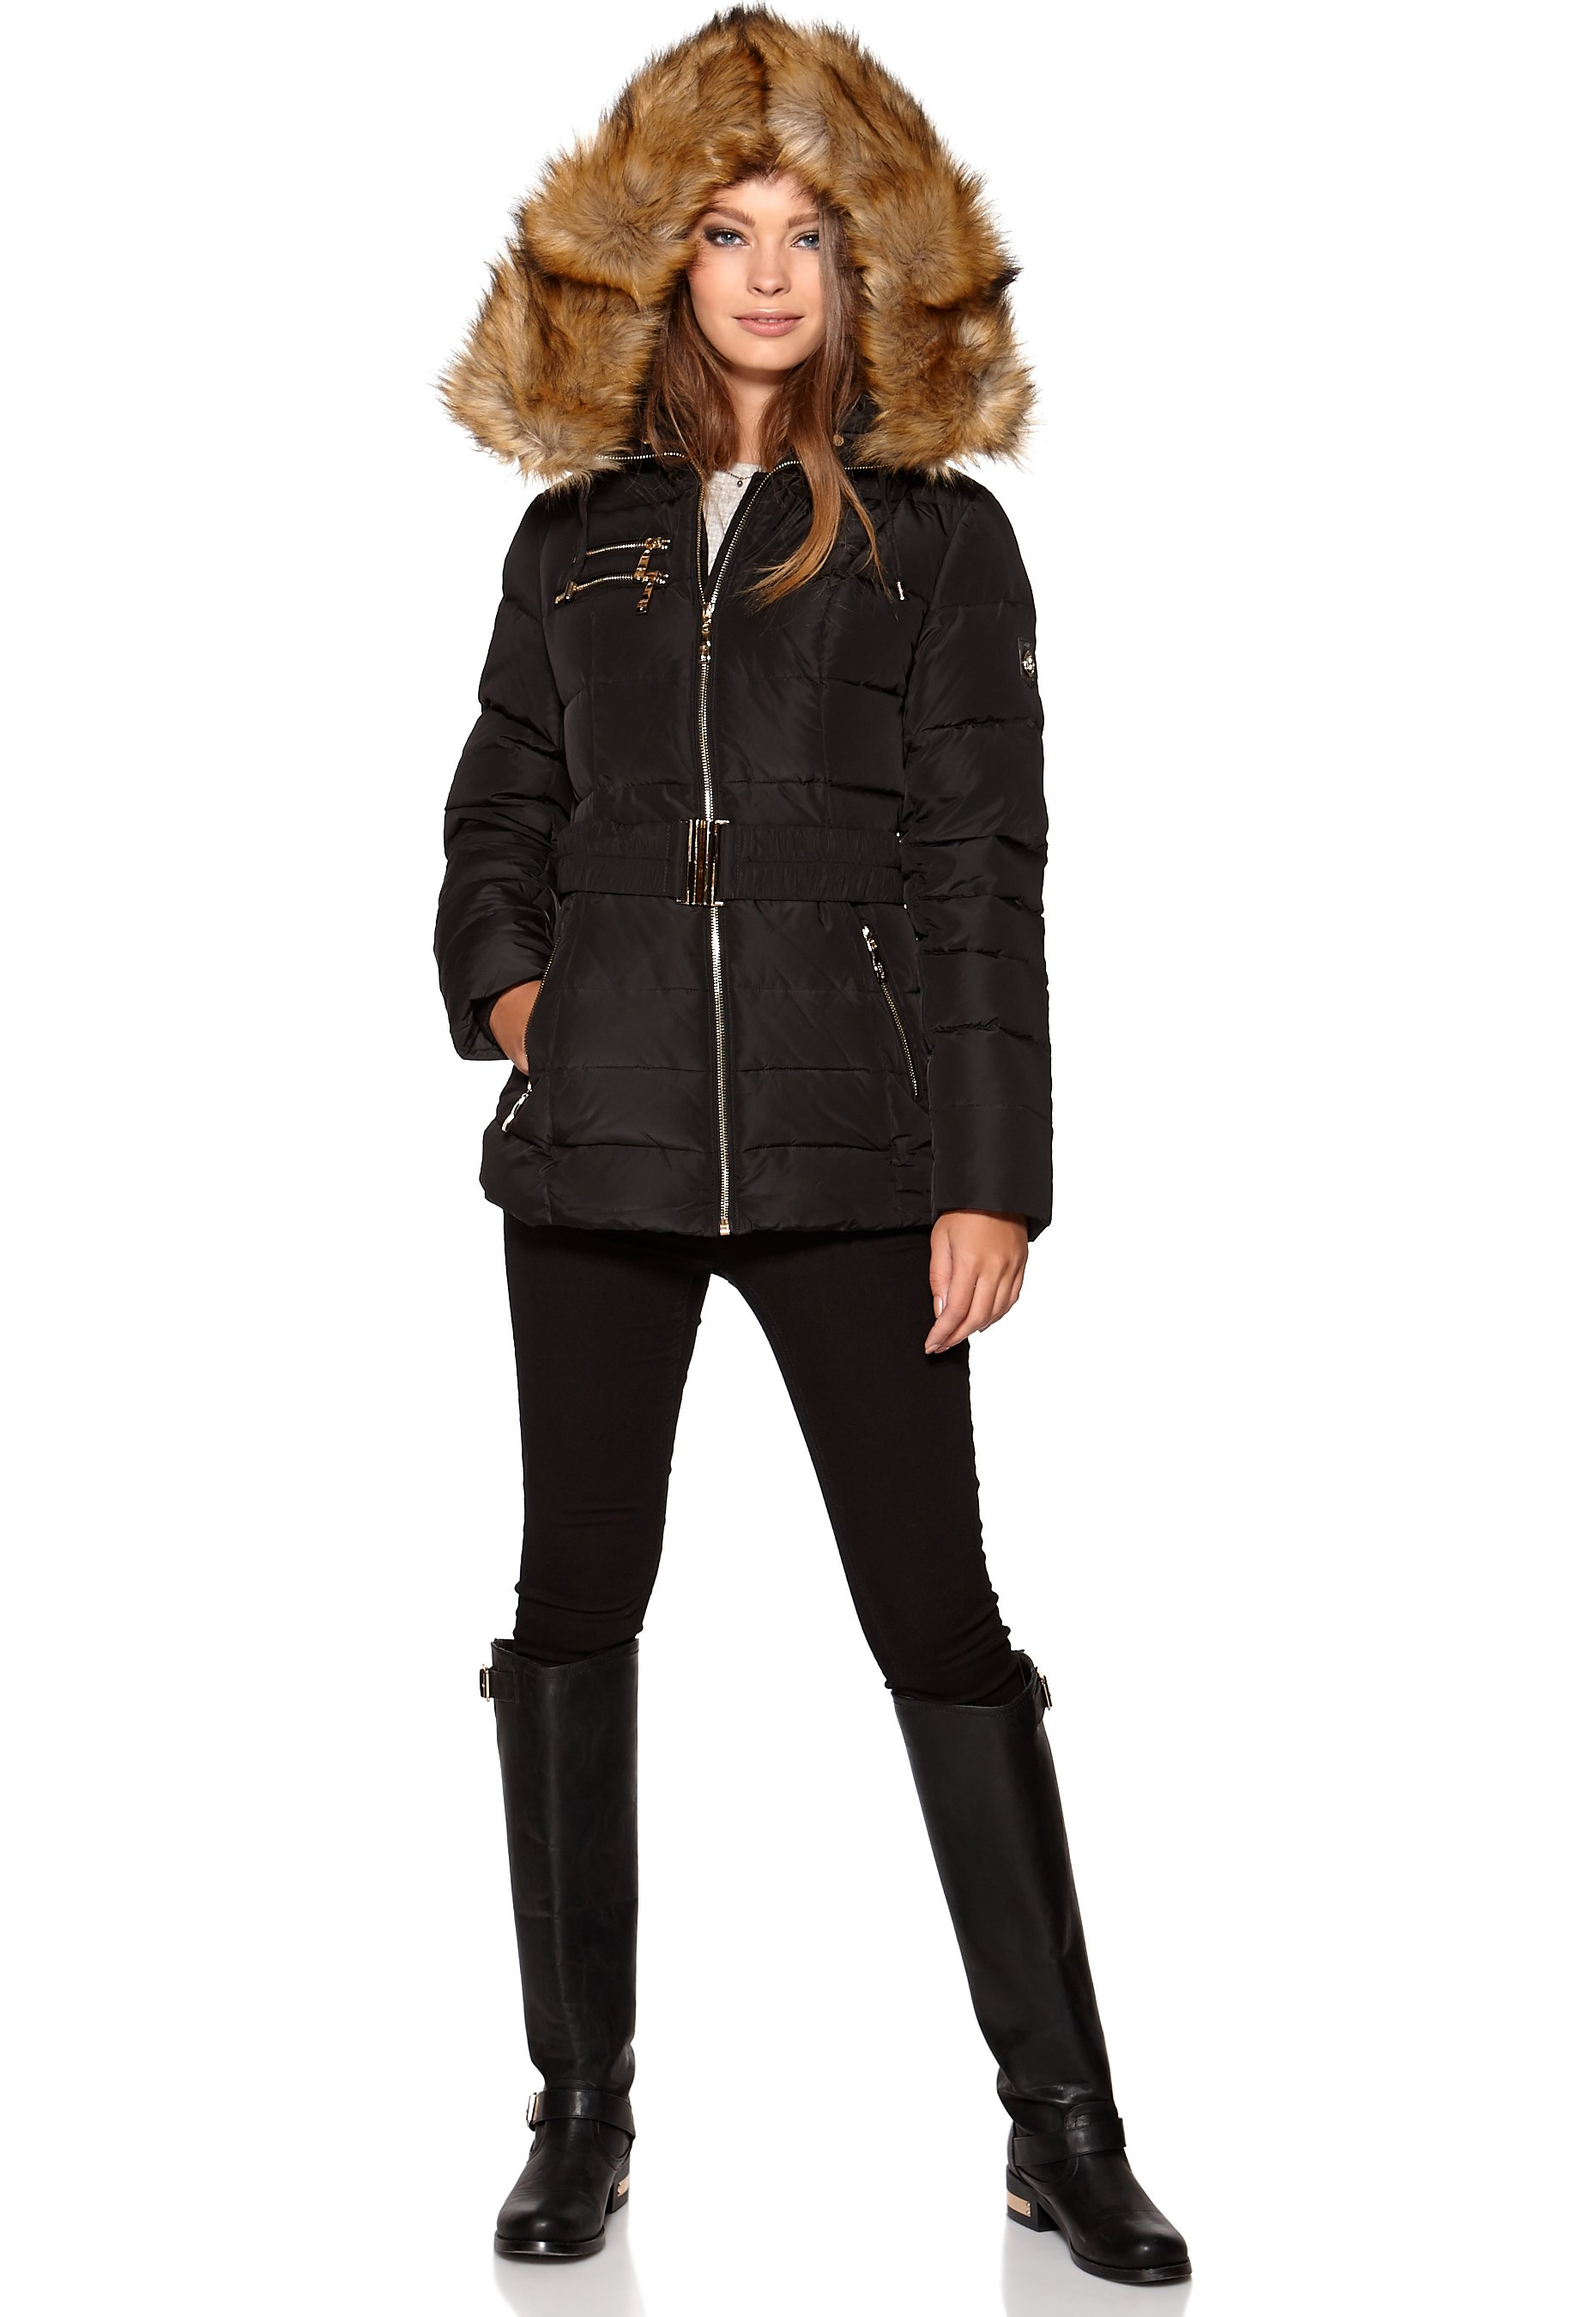 6121f728 Hollies Avoriaz Long Down Jacket Black - Bubbleroom